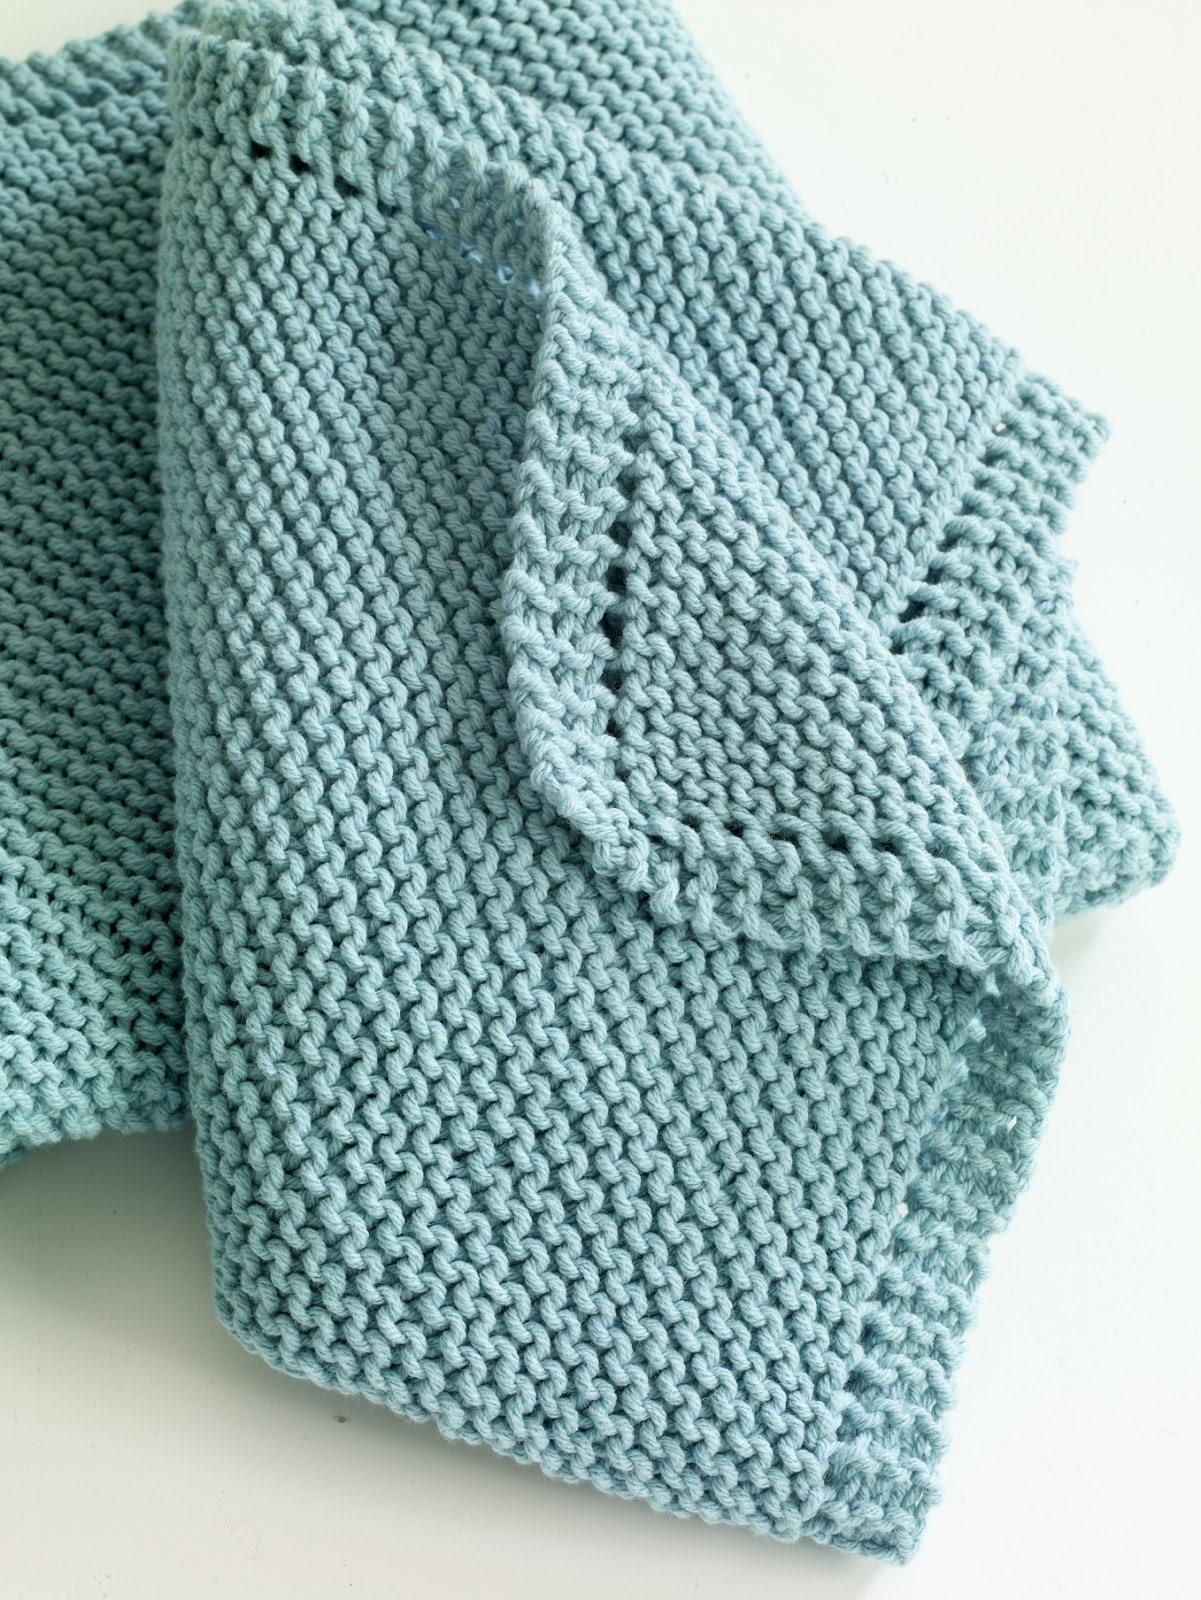 Easy Knitted Baby Blanket Patterns : Serenity Knits